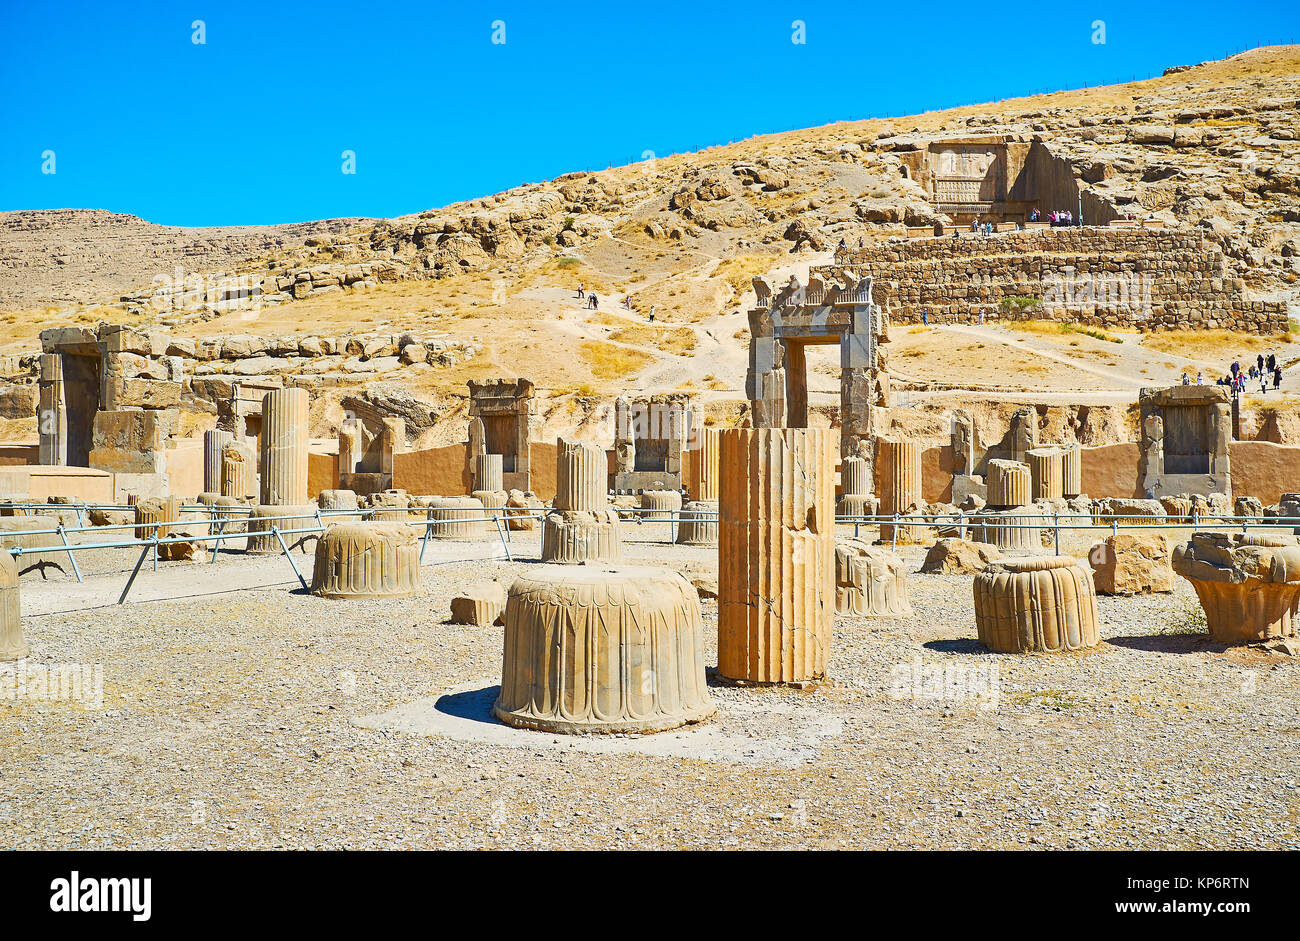 Persepolis is the visit card of Pars province and one of the most famous landmarks of Iran. - Stock Image